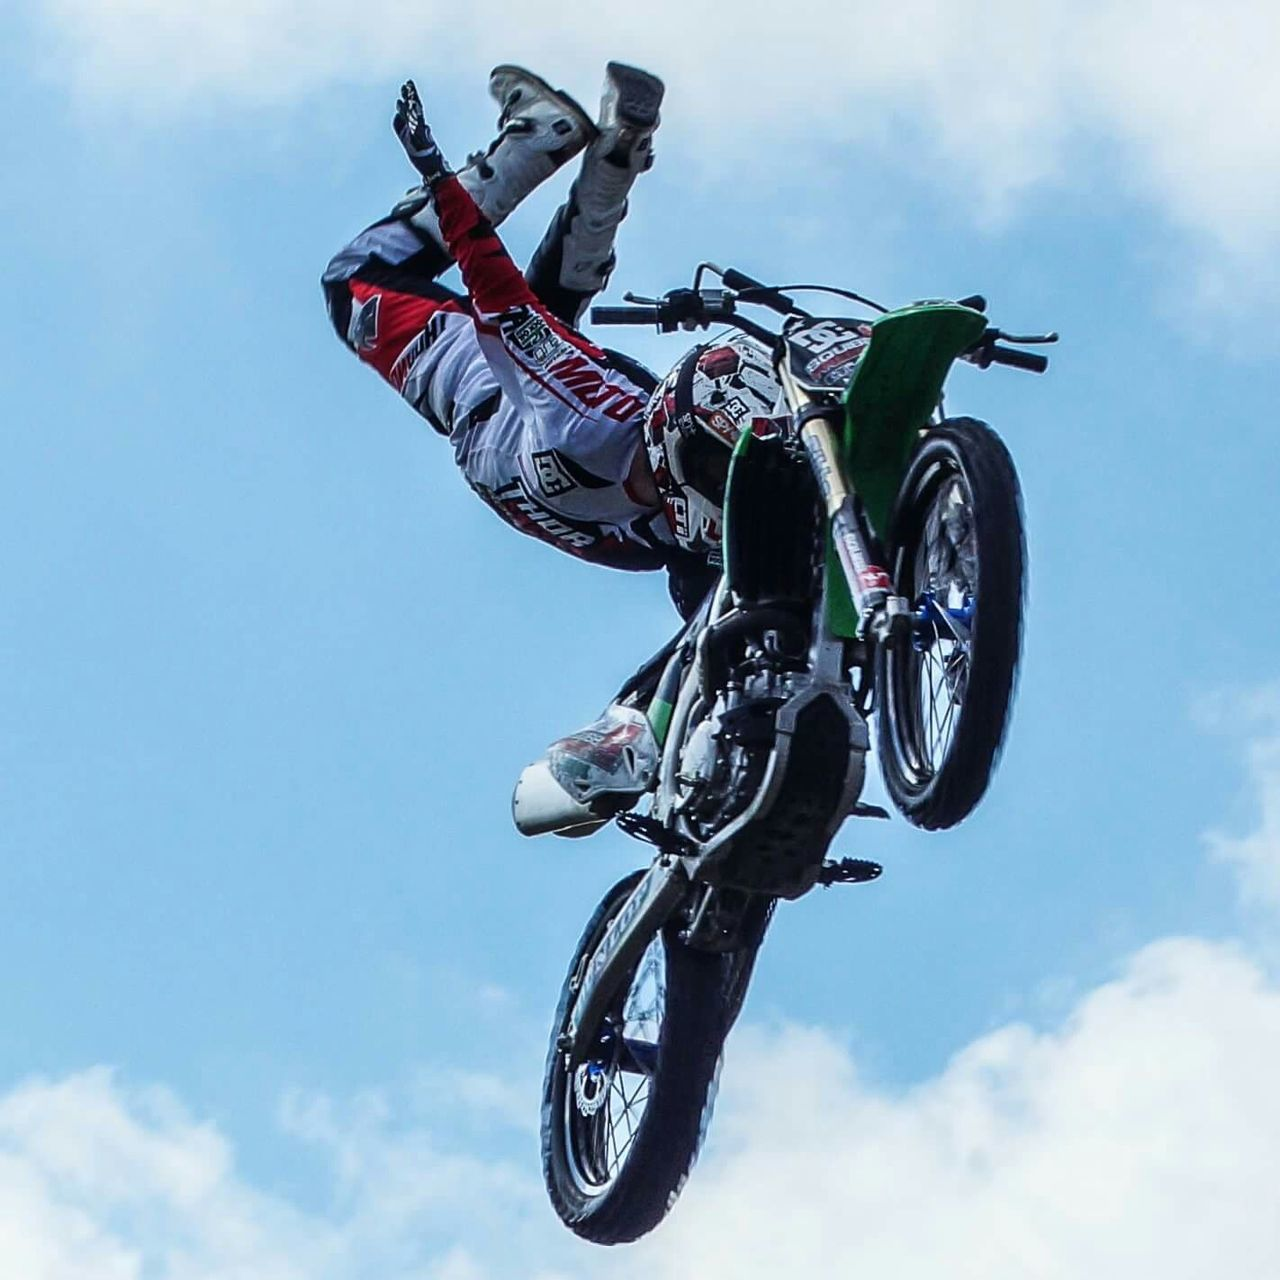 extreme sports, danger, stunt, low angle view, risk, cloud - sky, competitive sport, mid-air, skill, sport, competition, men, jumping, sky, adventure, motorcycle, activity, motocross, motion, outdoors, sports helmet, day, headwear, helmet, one person, motorsport, professional sport, real people, sports track, sports race, people, one man only, only men, athlete, adult, stunt person, adults only